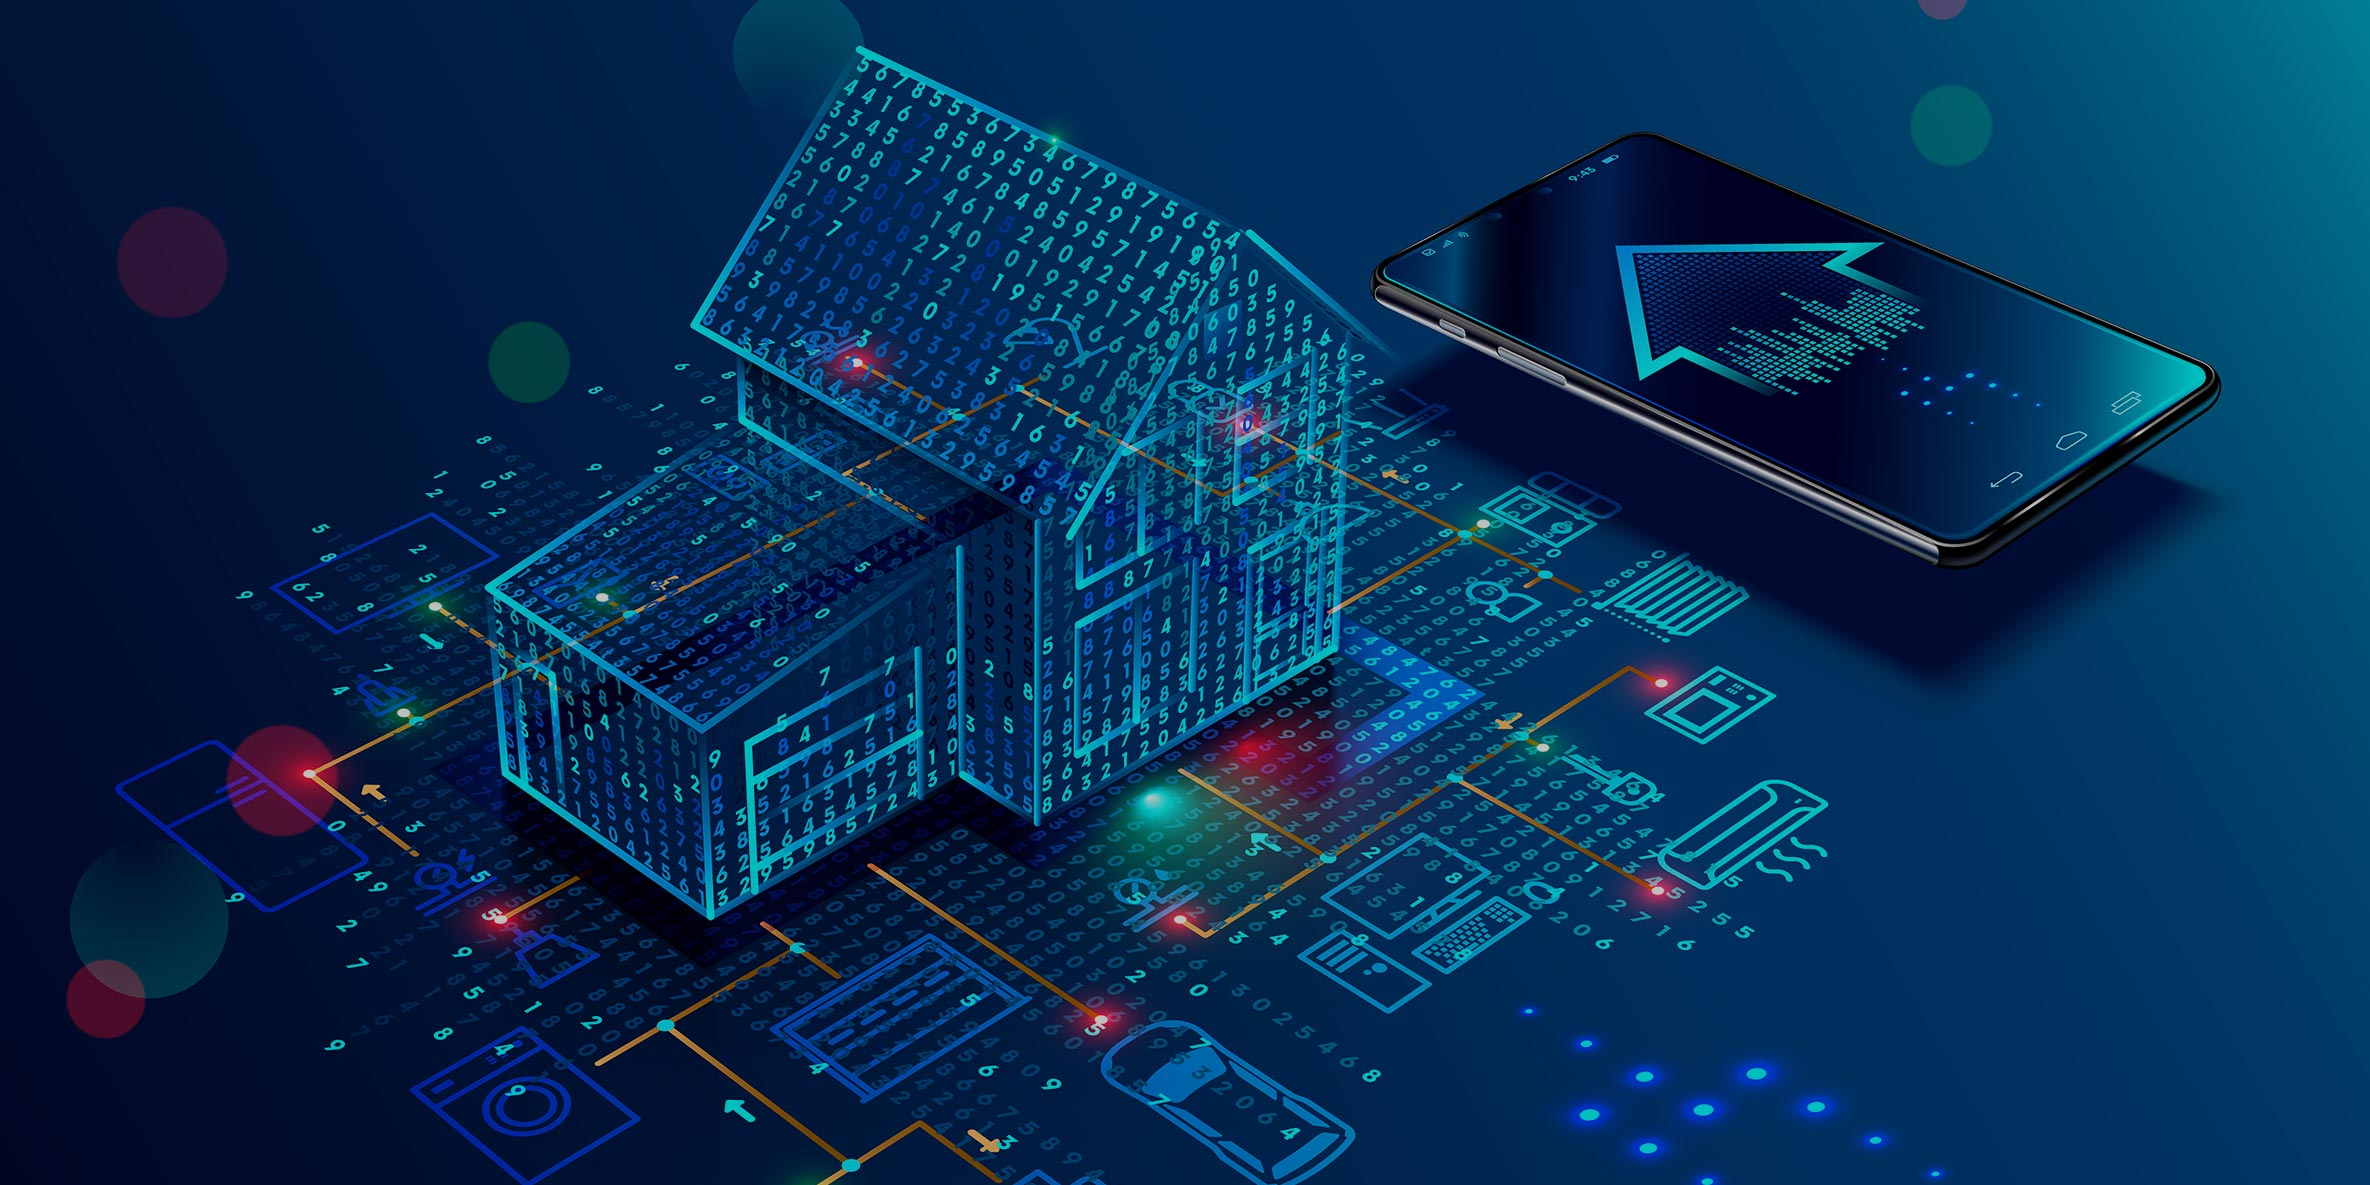 Why Automated Homes Need Stronger Cyber Security